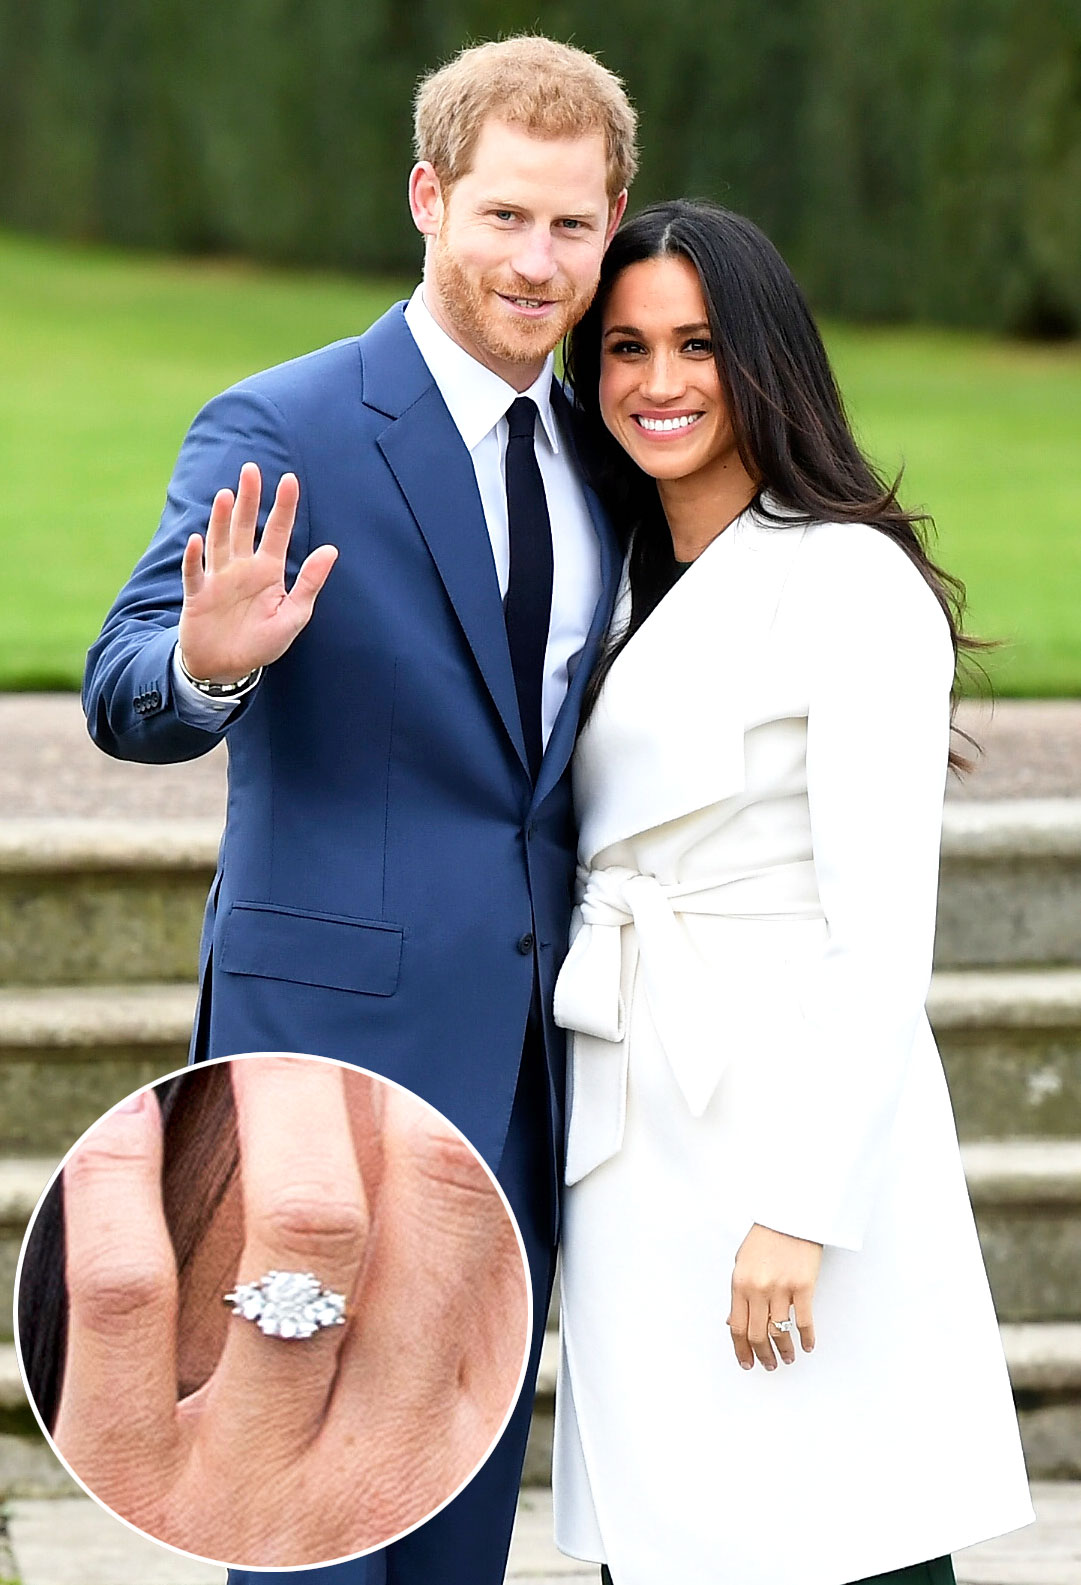 markle ring rings engagement compared meghan camilla queen royalty kate values and wedding diana pri camillas middleton royal